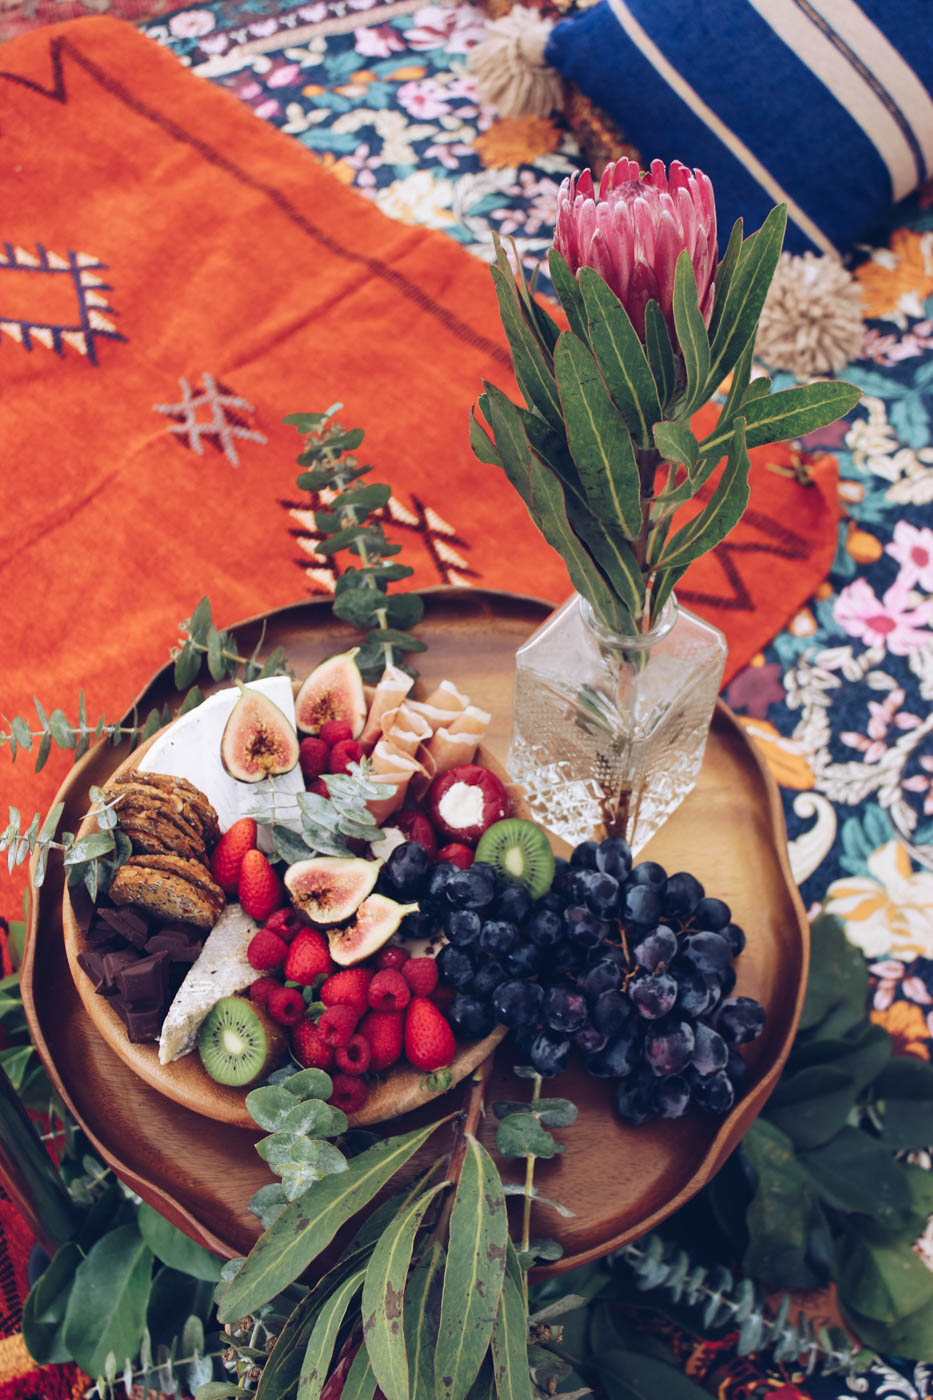 the_Collection_co_grazing_table_cairns_weddings_catering_grazing_platter_hire_pop_up_picnic_bell_tent_event_hire_styling-4-2.jpg